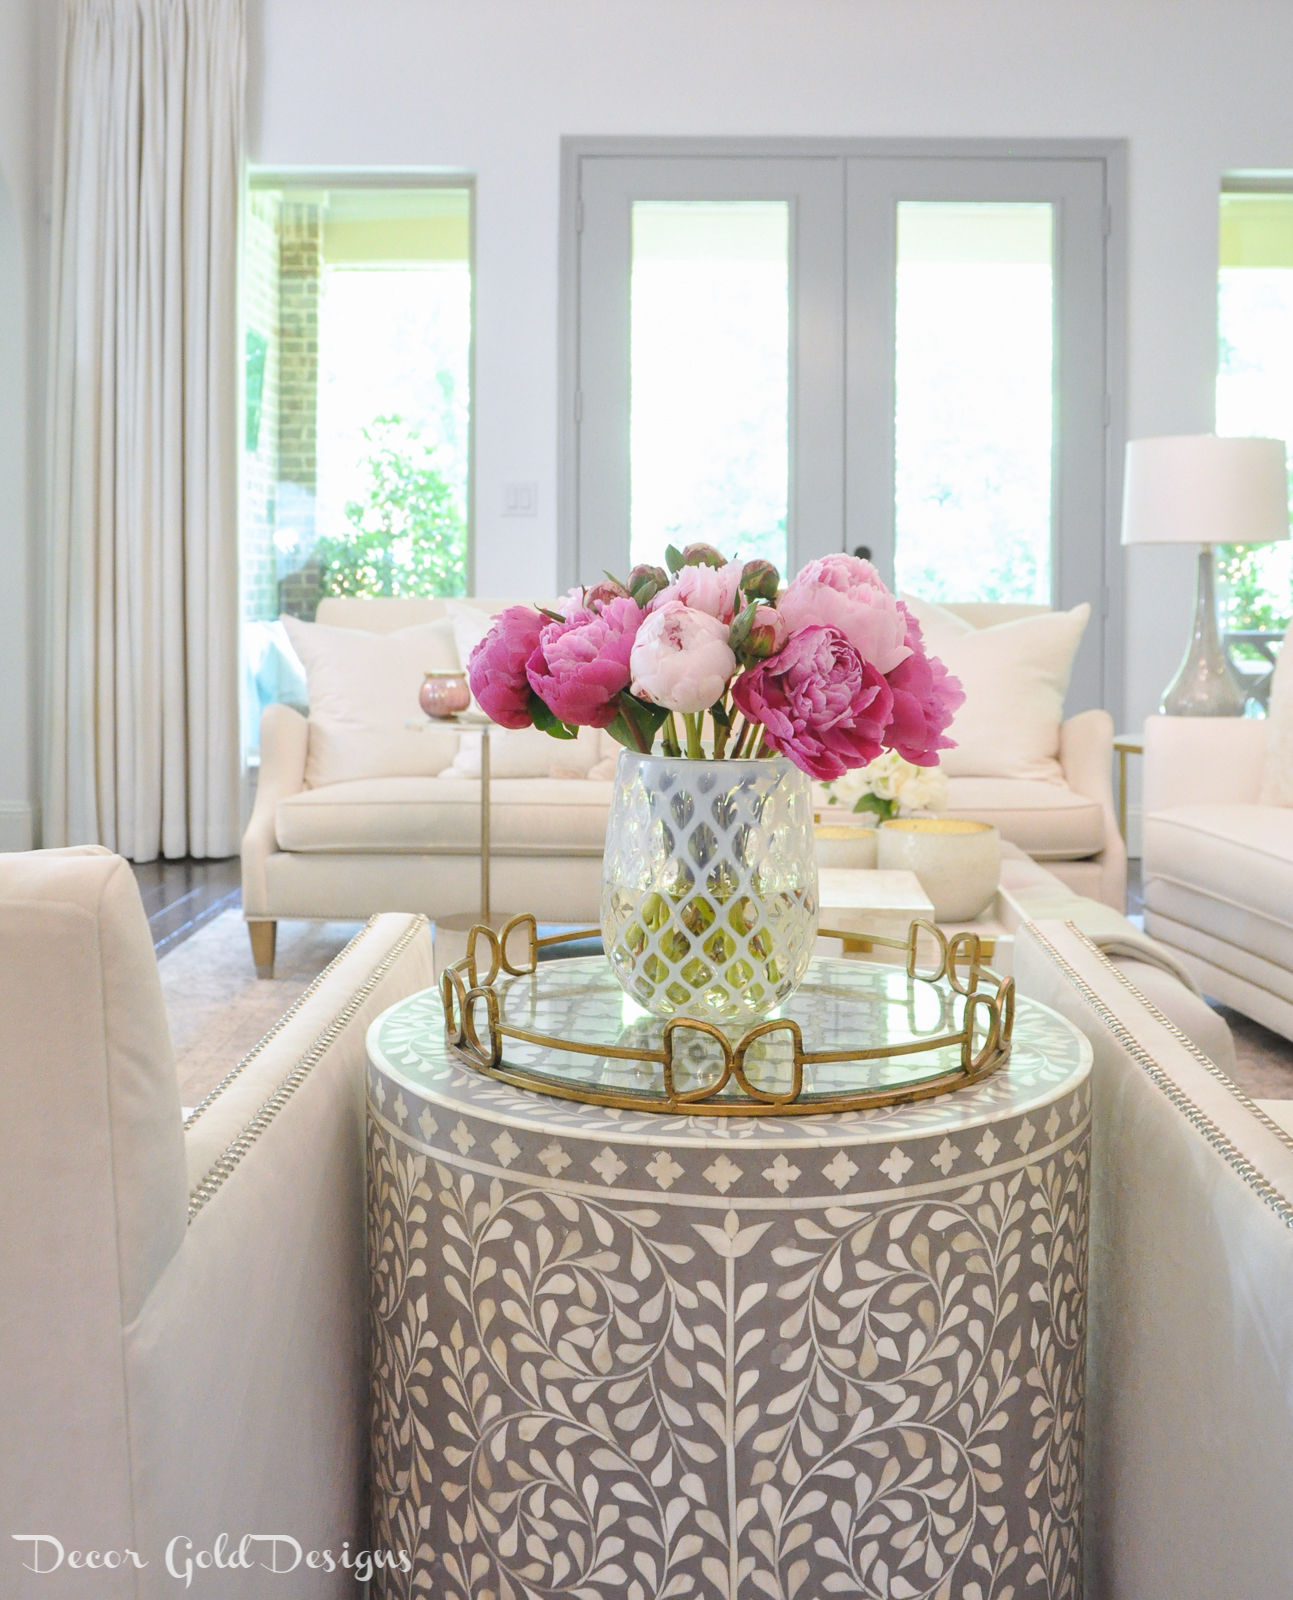 Summer home tour living room decor blush bright pink